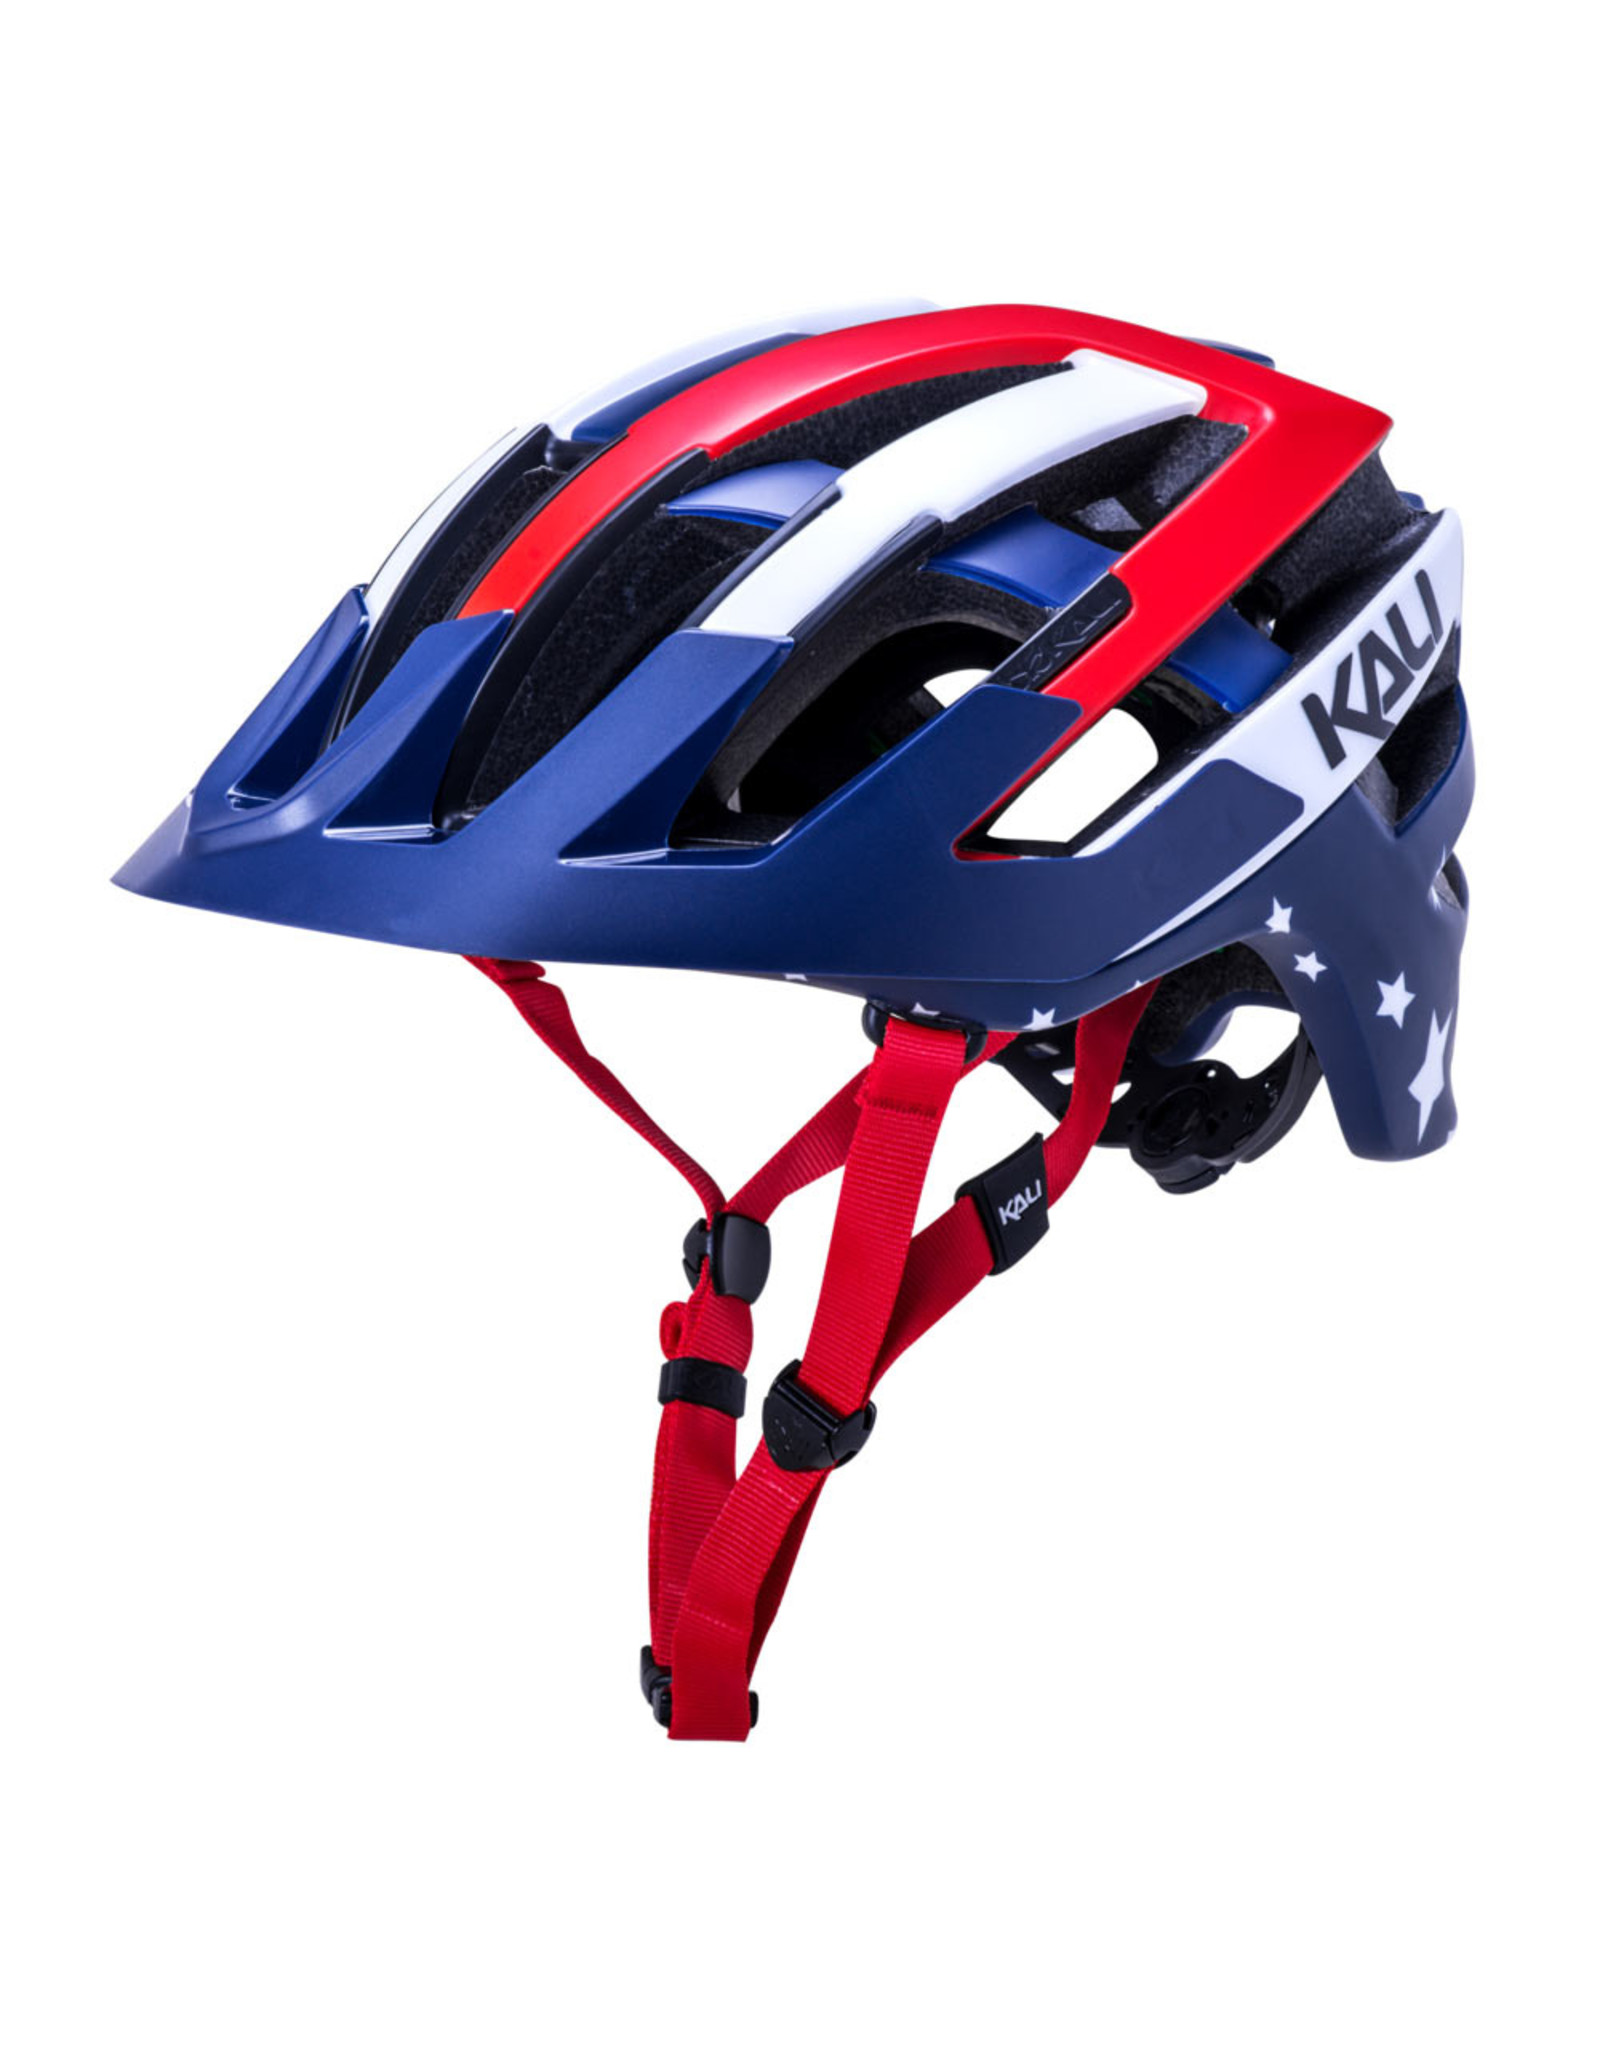 Kali Protectives Kali Protectives Interceptor Patriot Helmet - Red/White/Blue, Large/X-Large